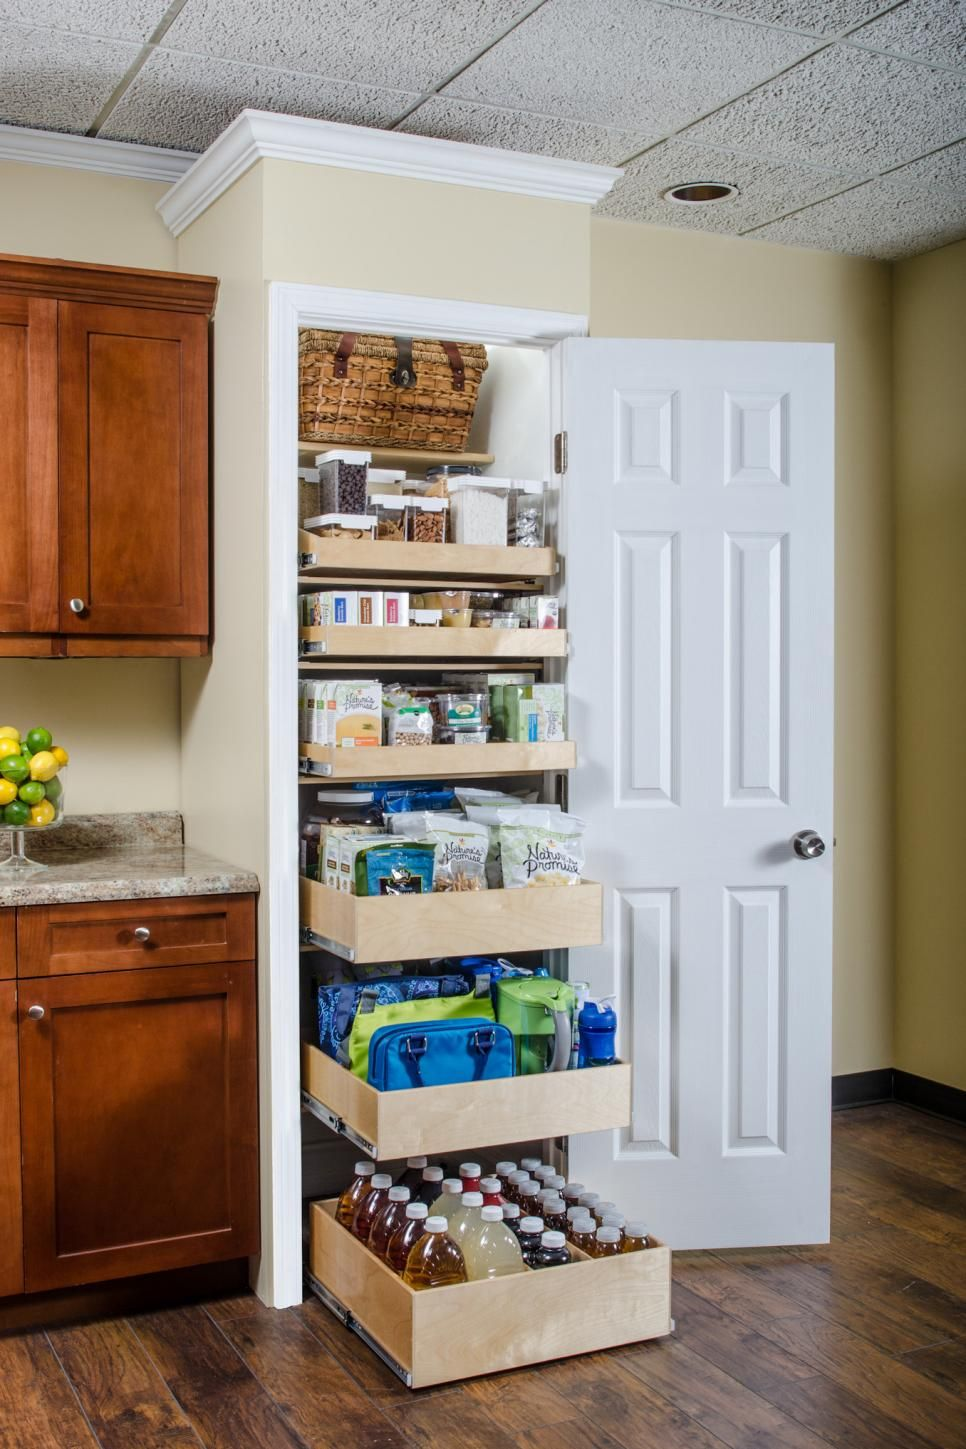 design ideas com aerojackson pantry kitchen designs pinterest storage closet